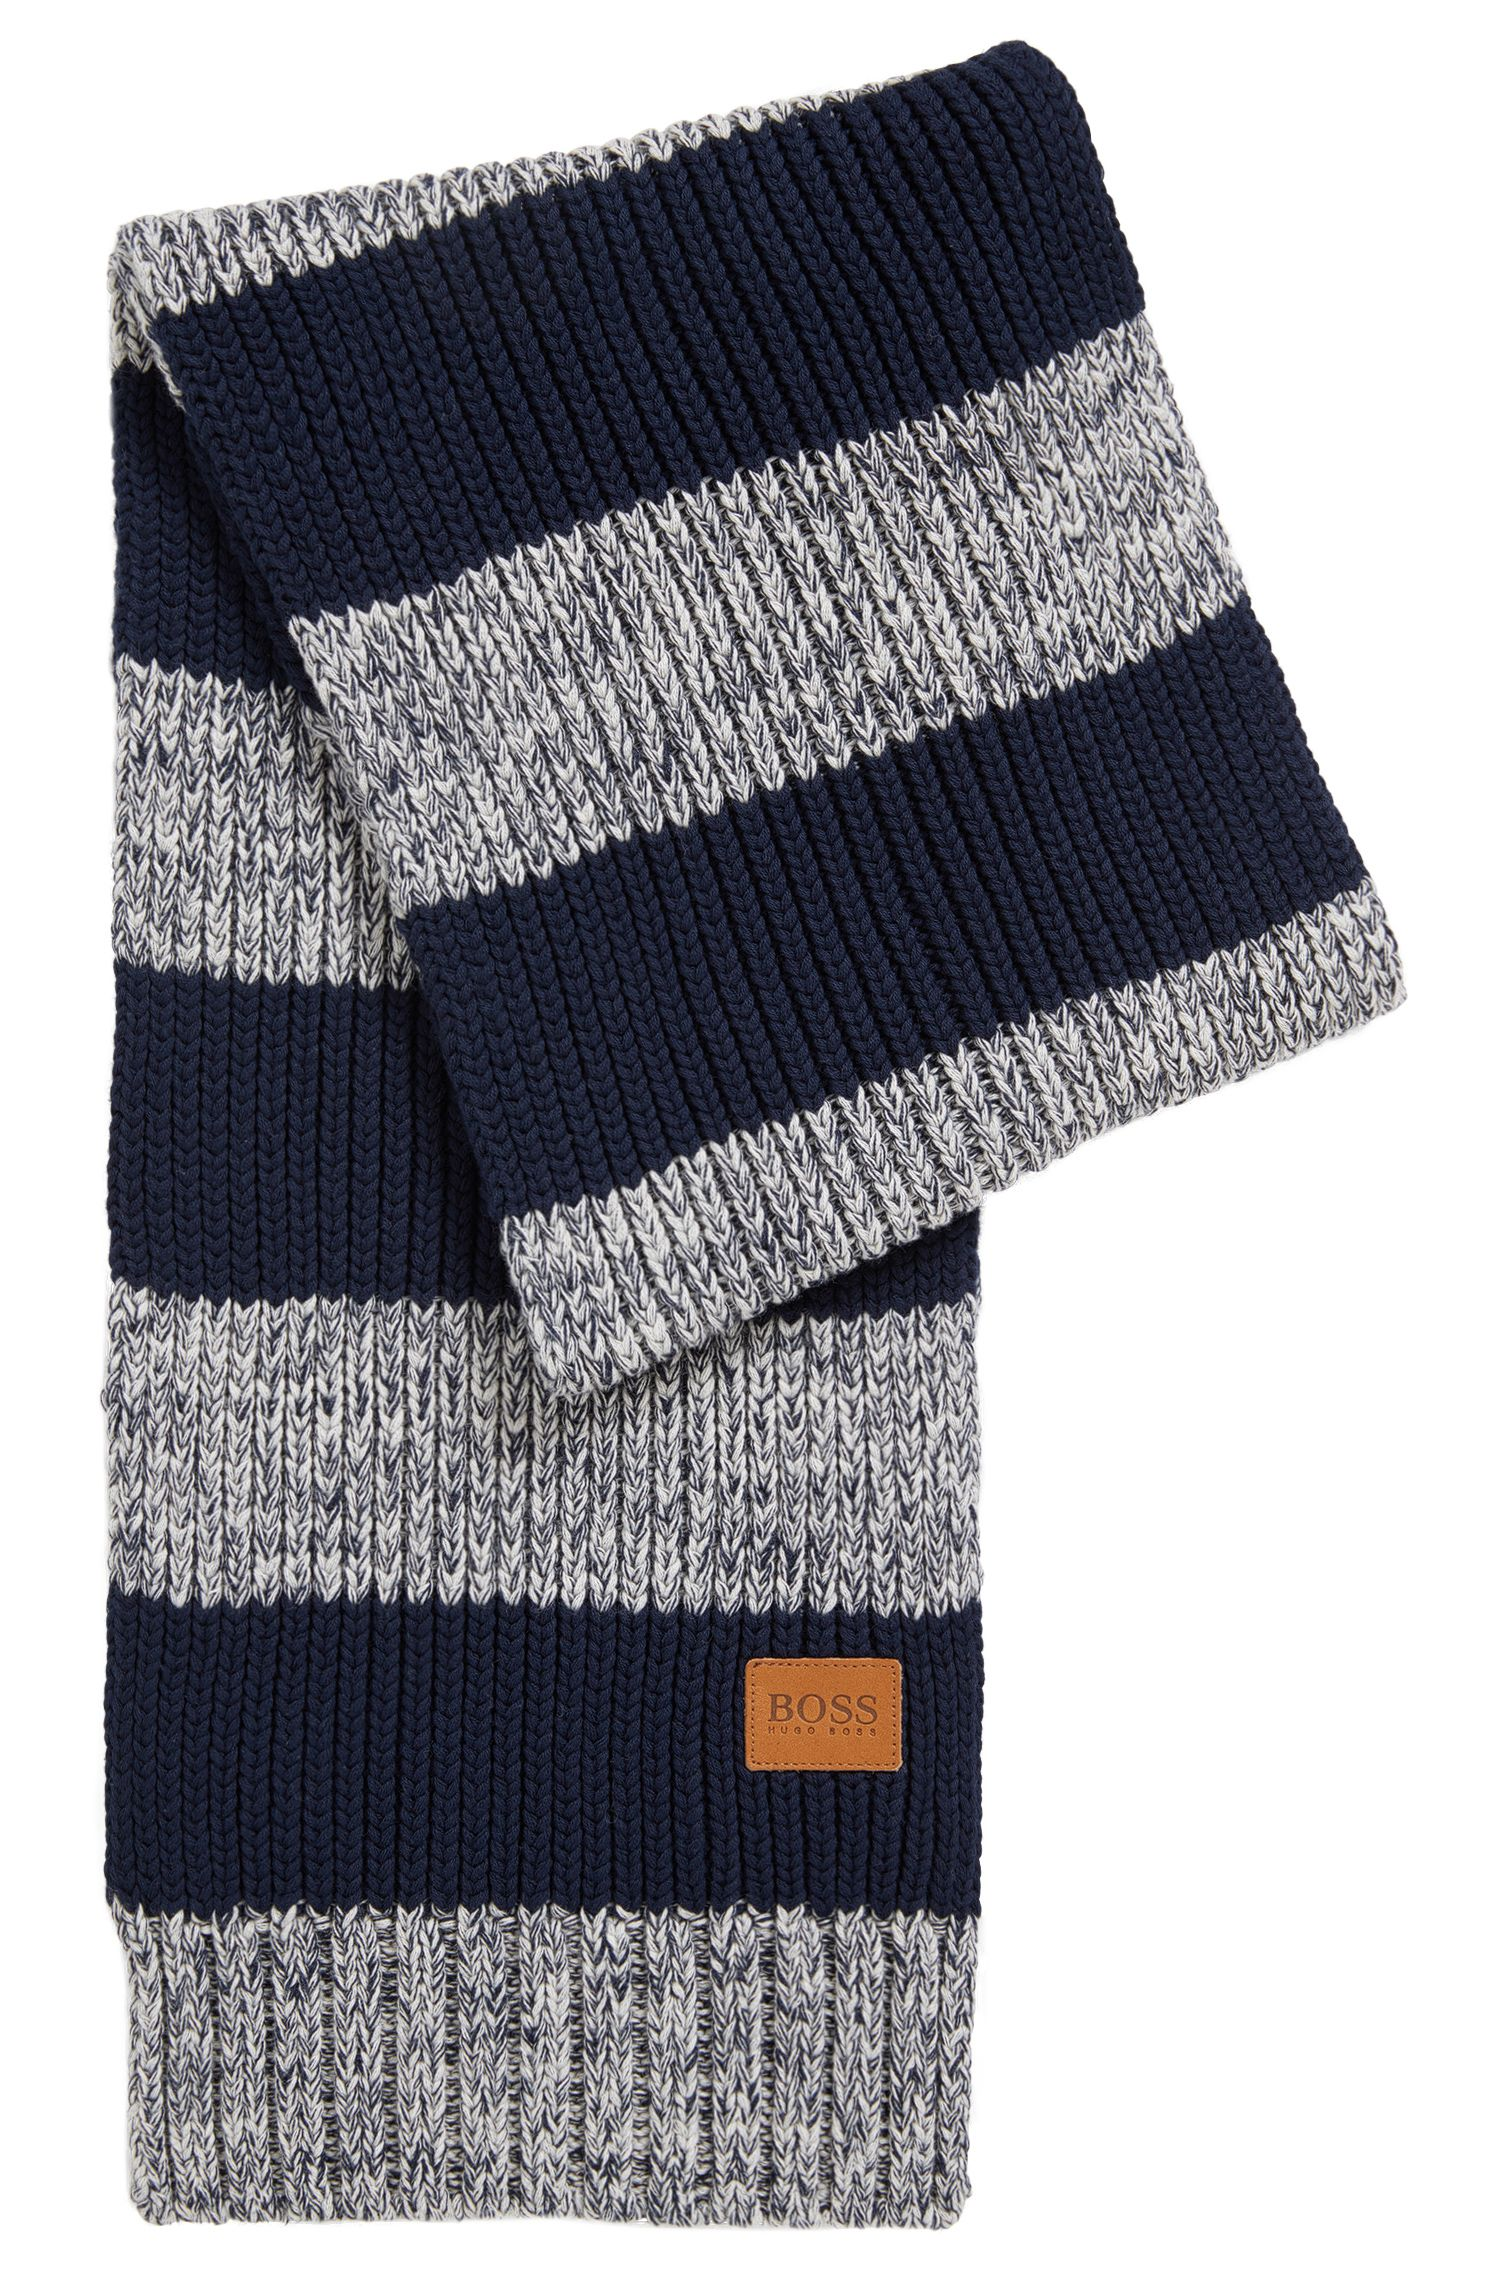 Kids' striped scarf in knitted cotton